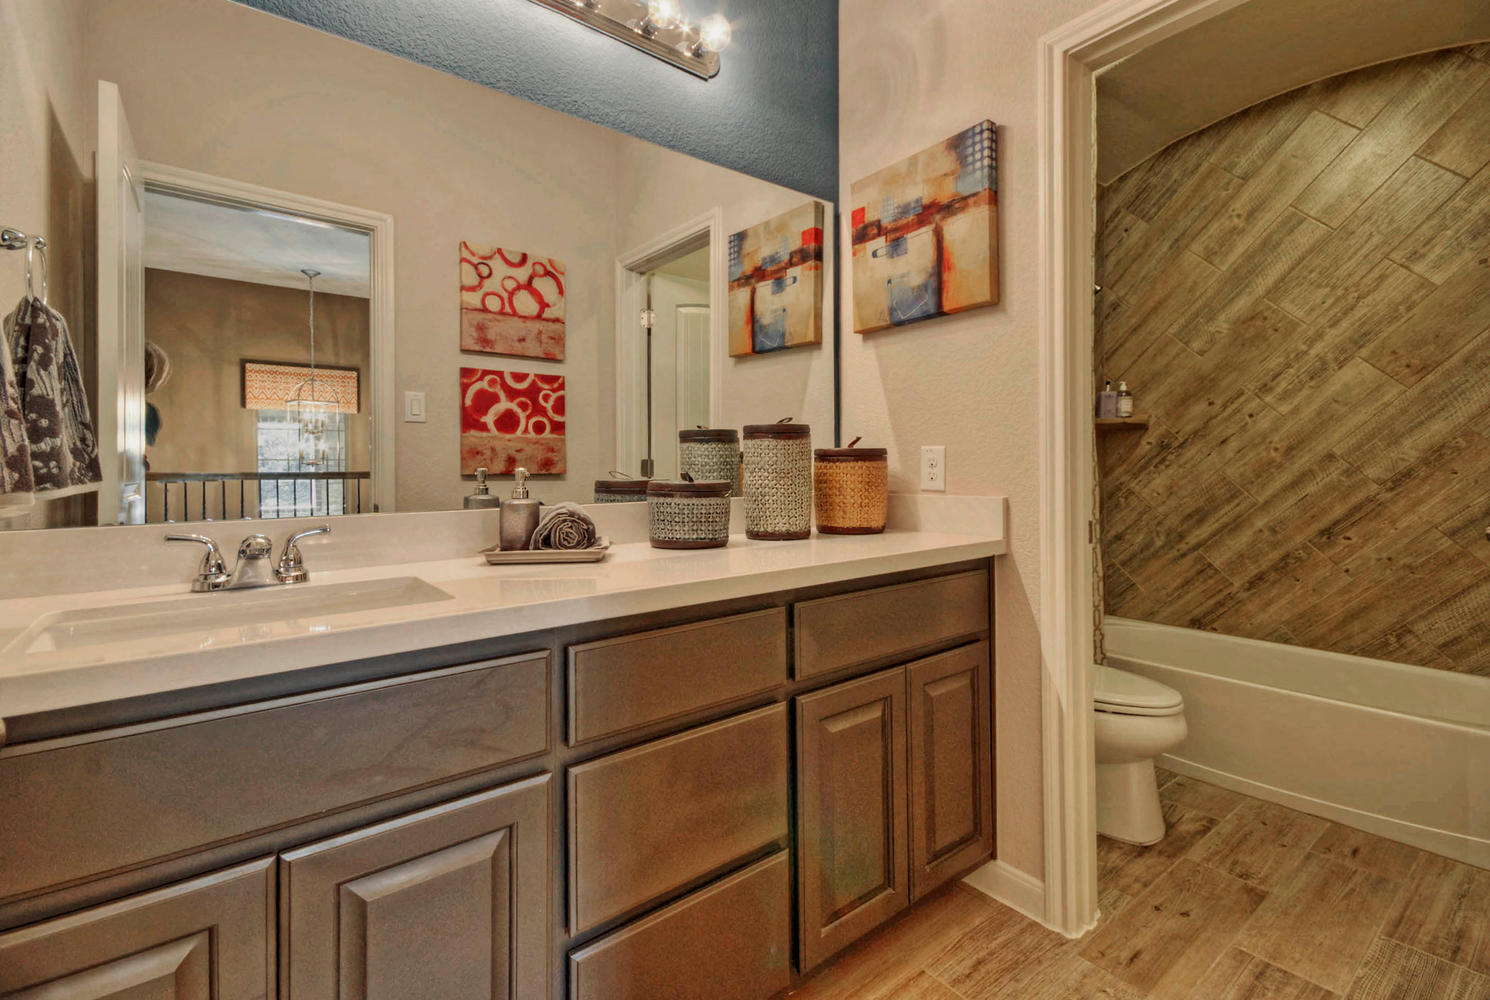 Secondary bath cabinets by Burrows Cabinets